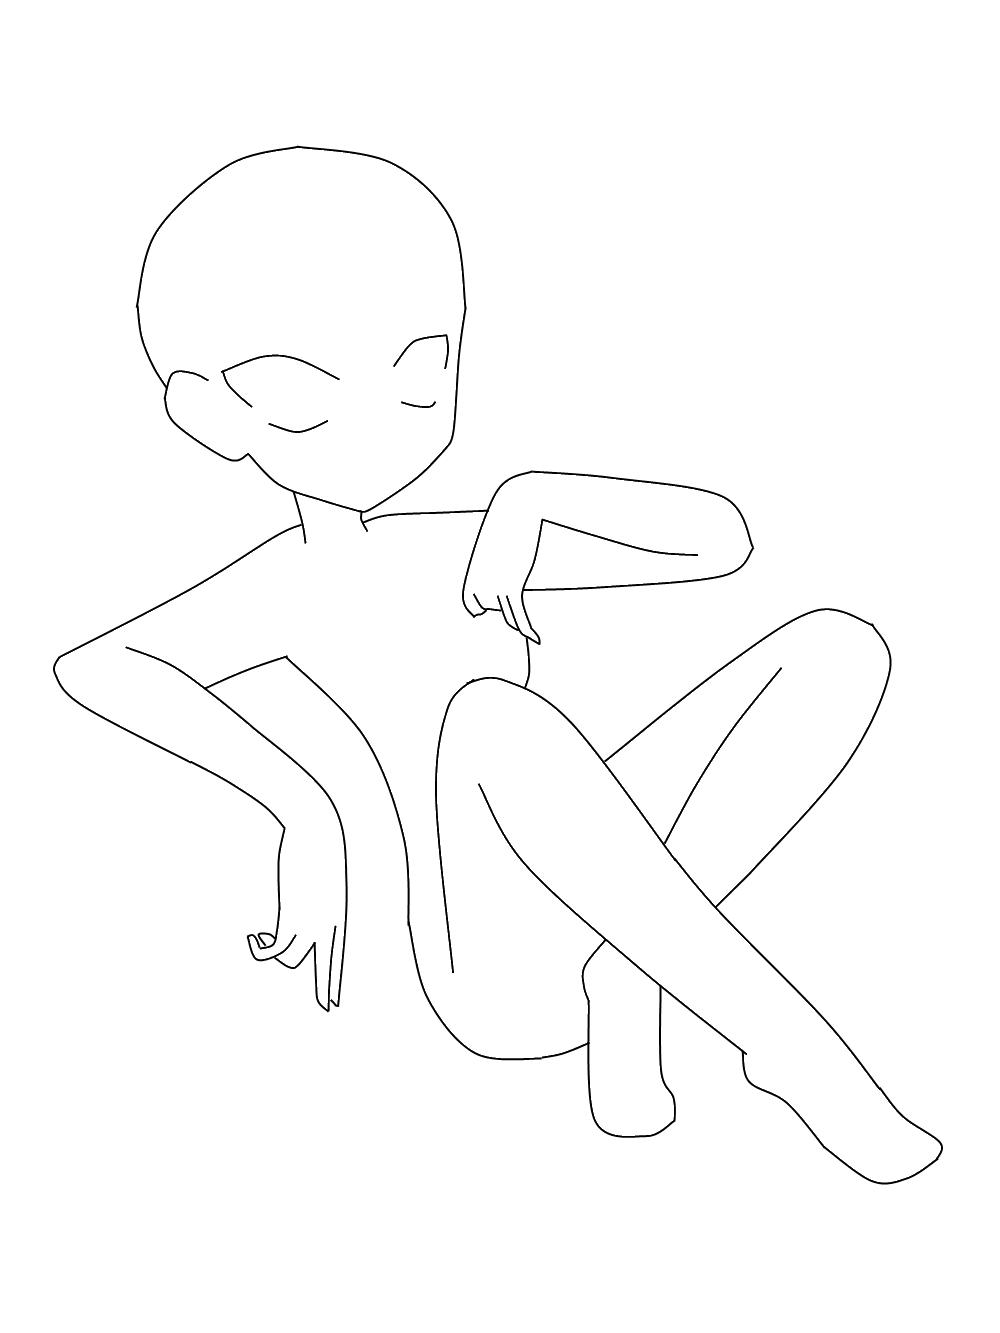 Ilmu Pengetahuan 10: Anime Girl Body Base Sitting